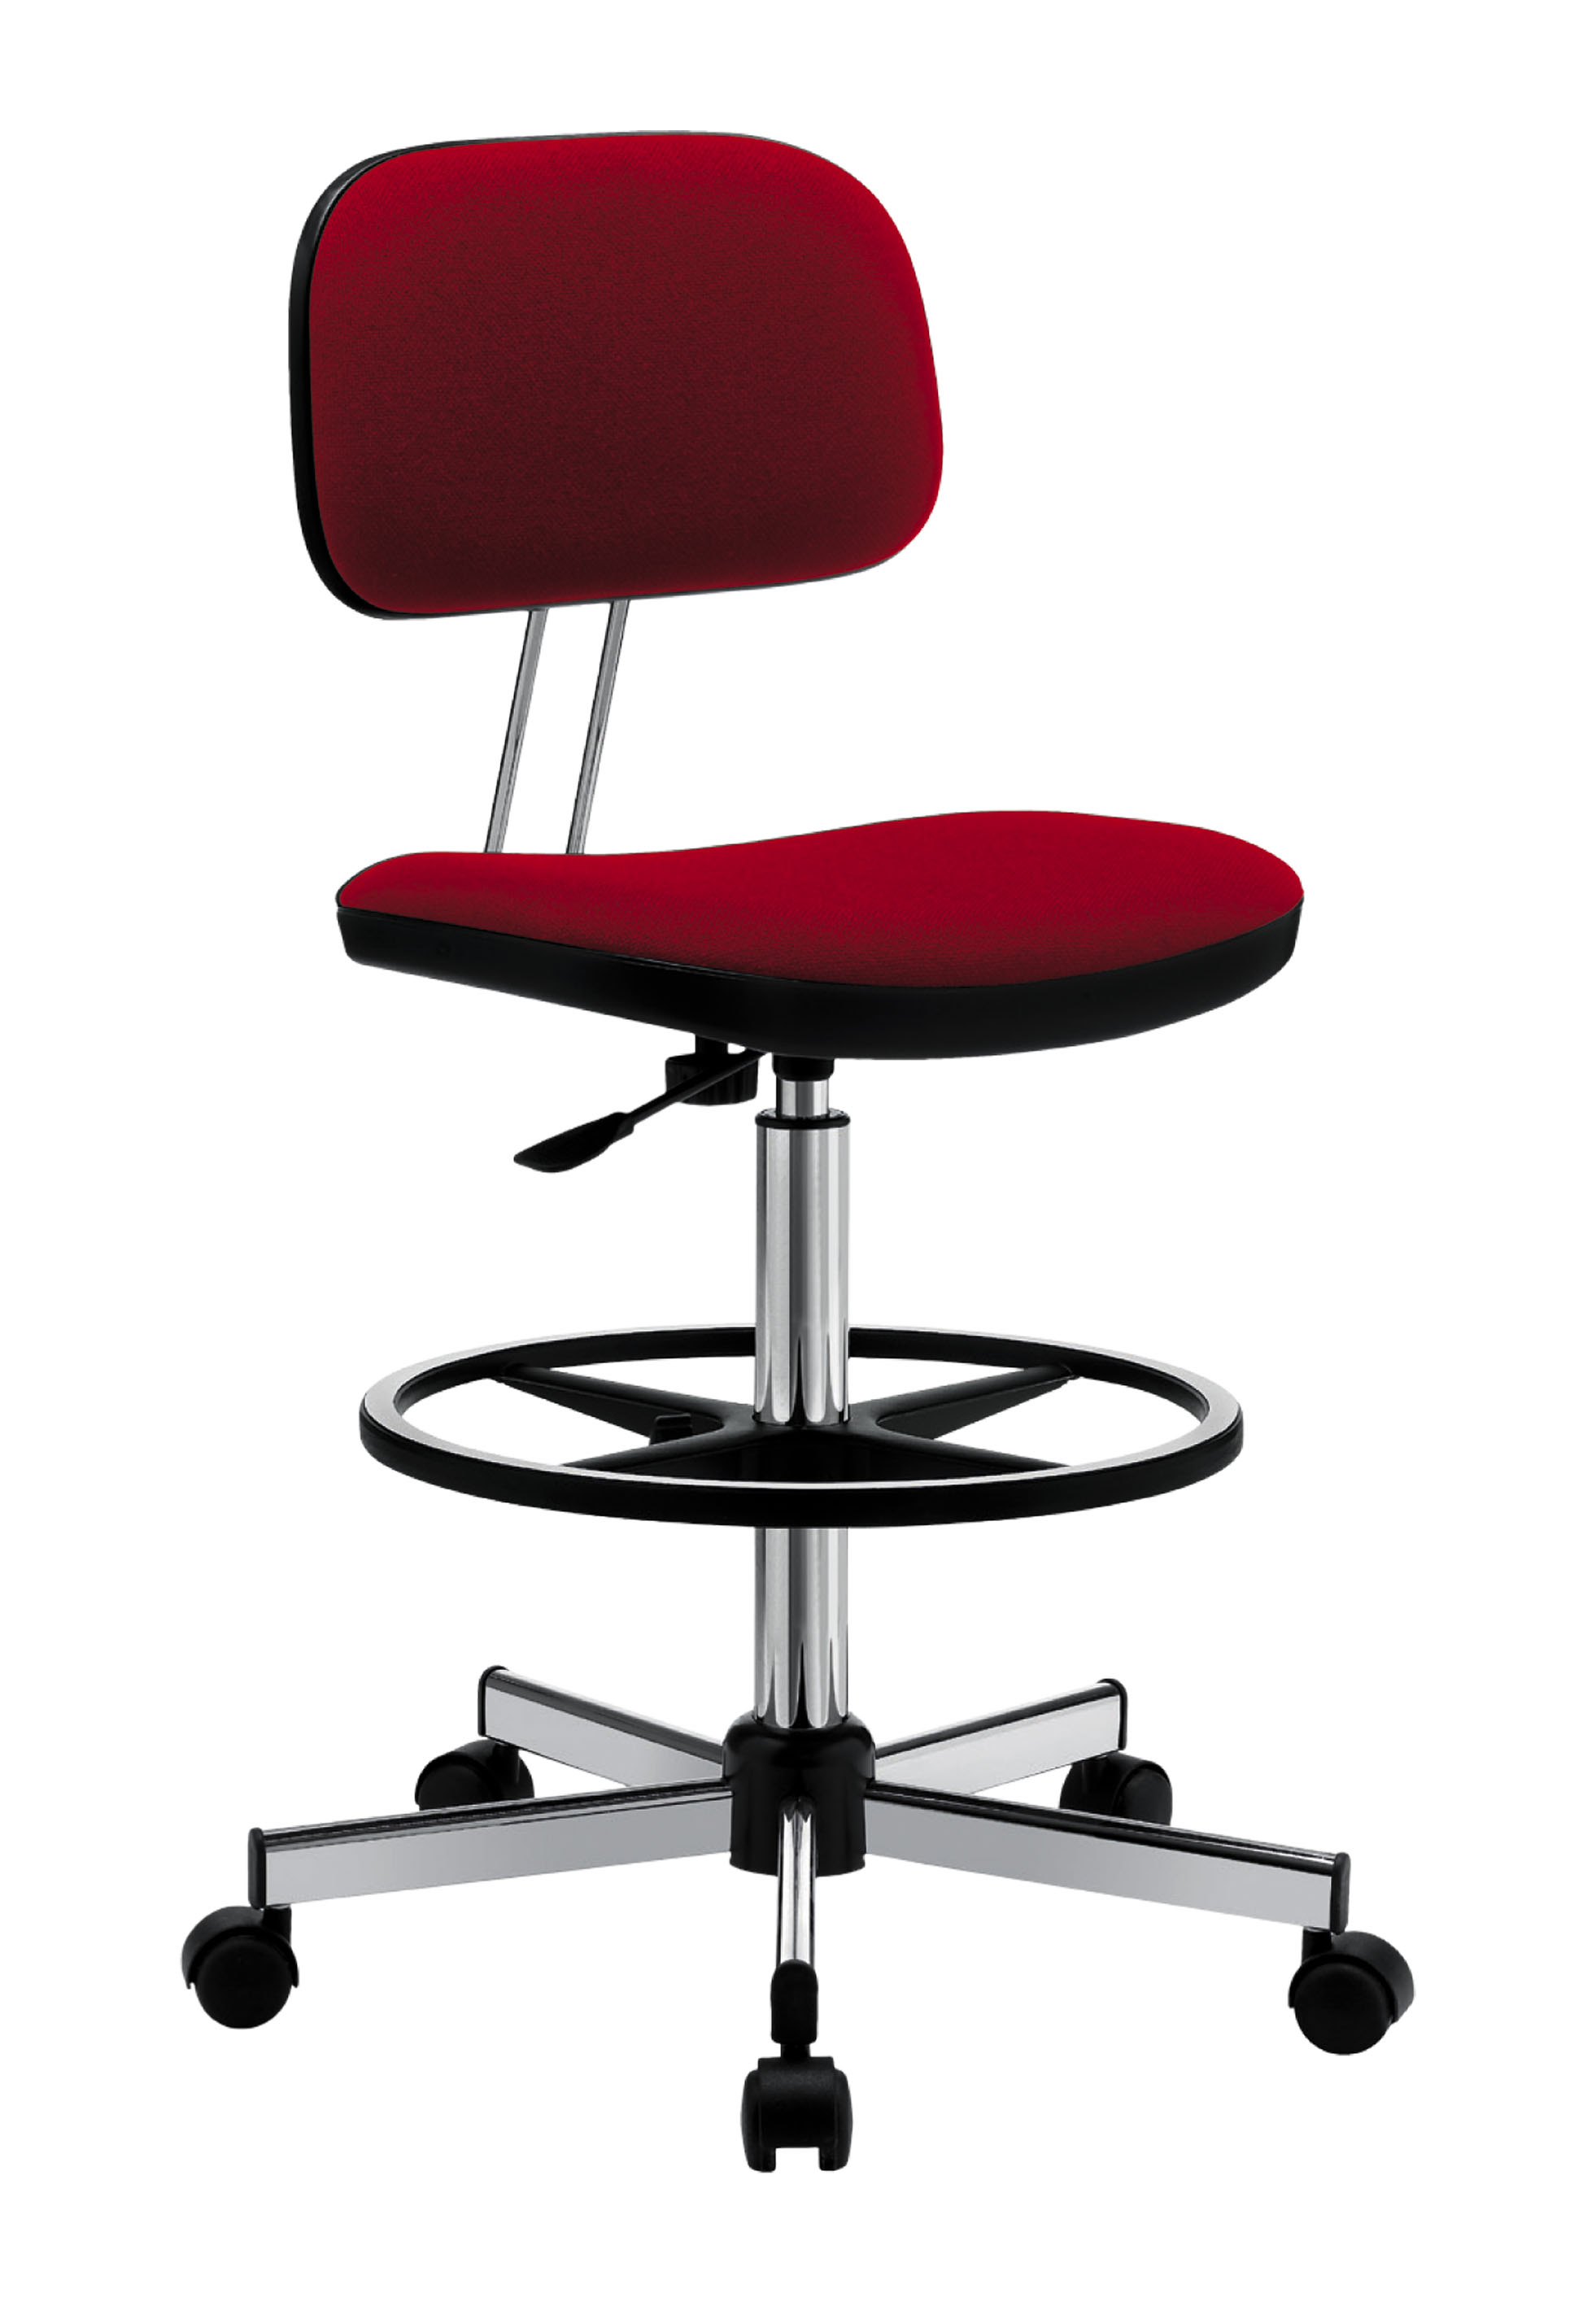 Swivel Work Stool Mod 1155 Grendene